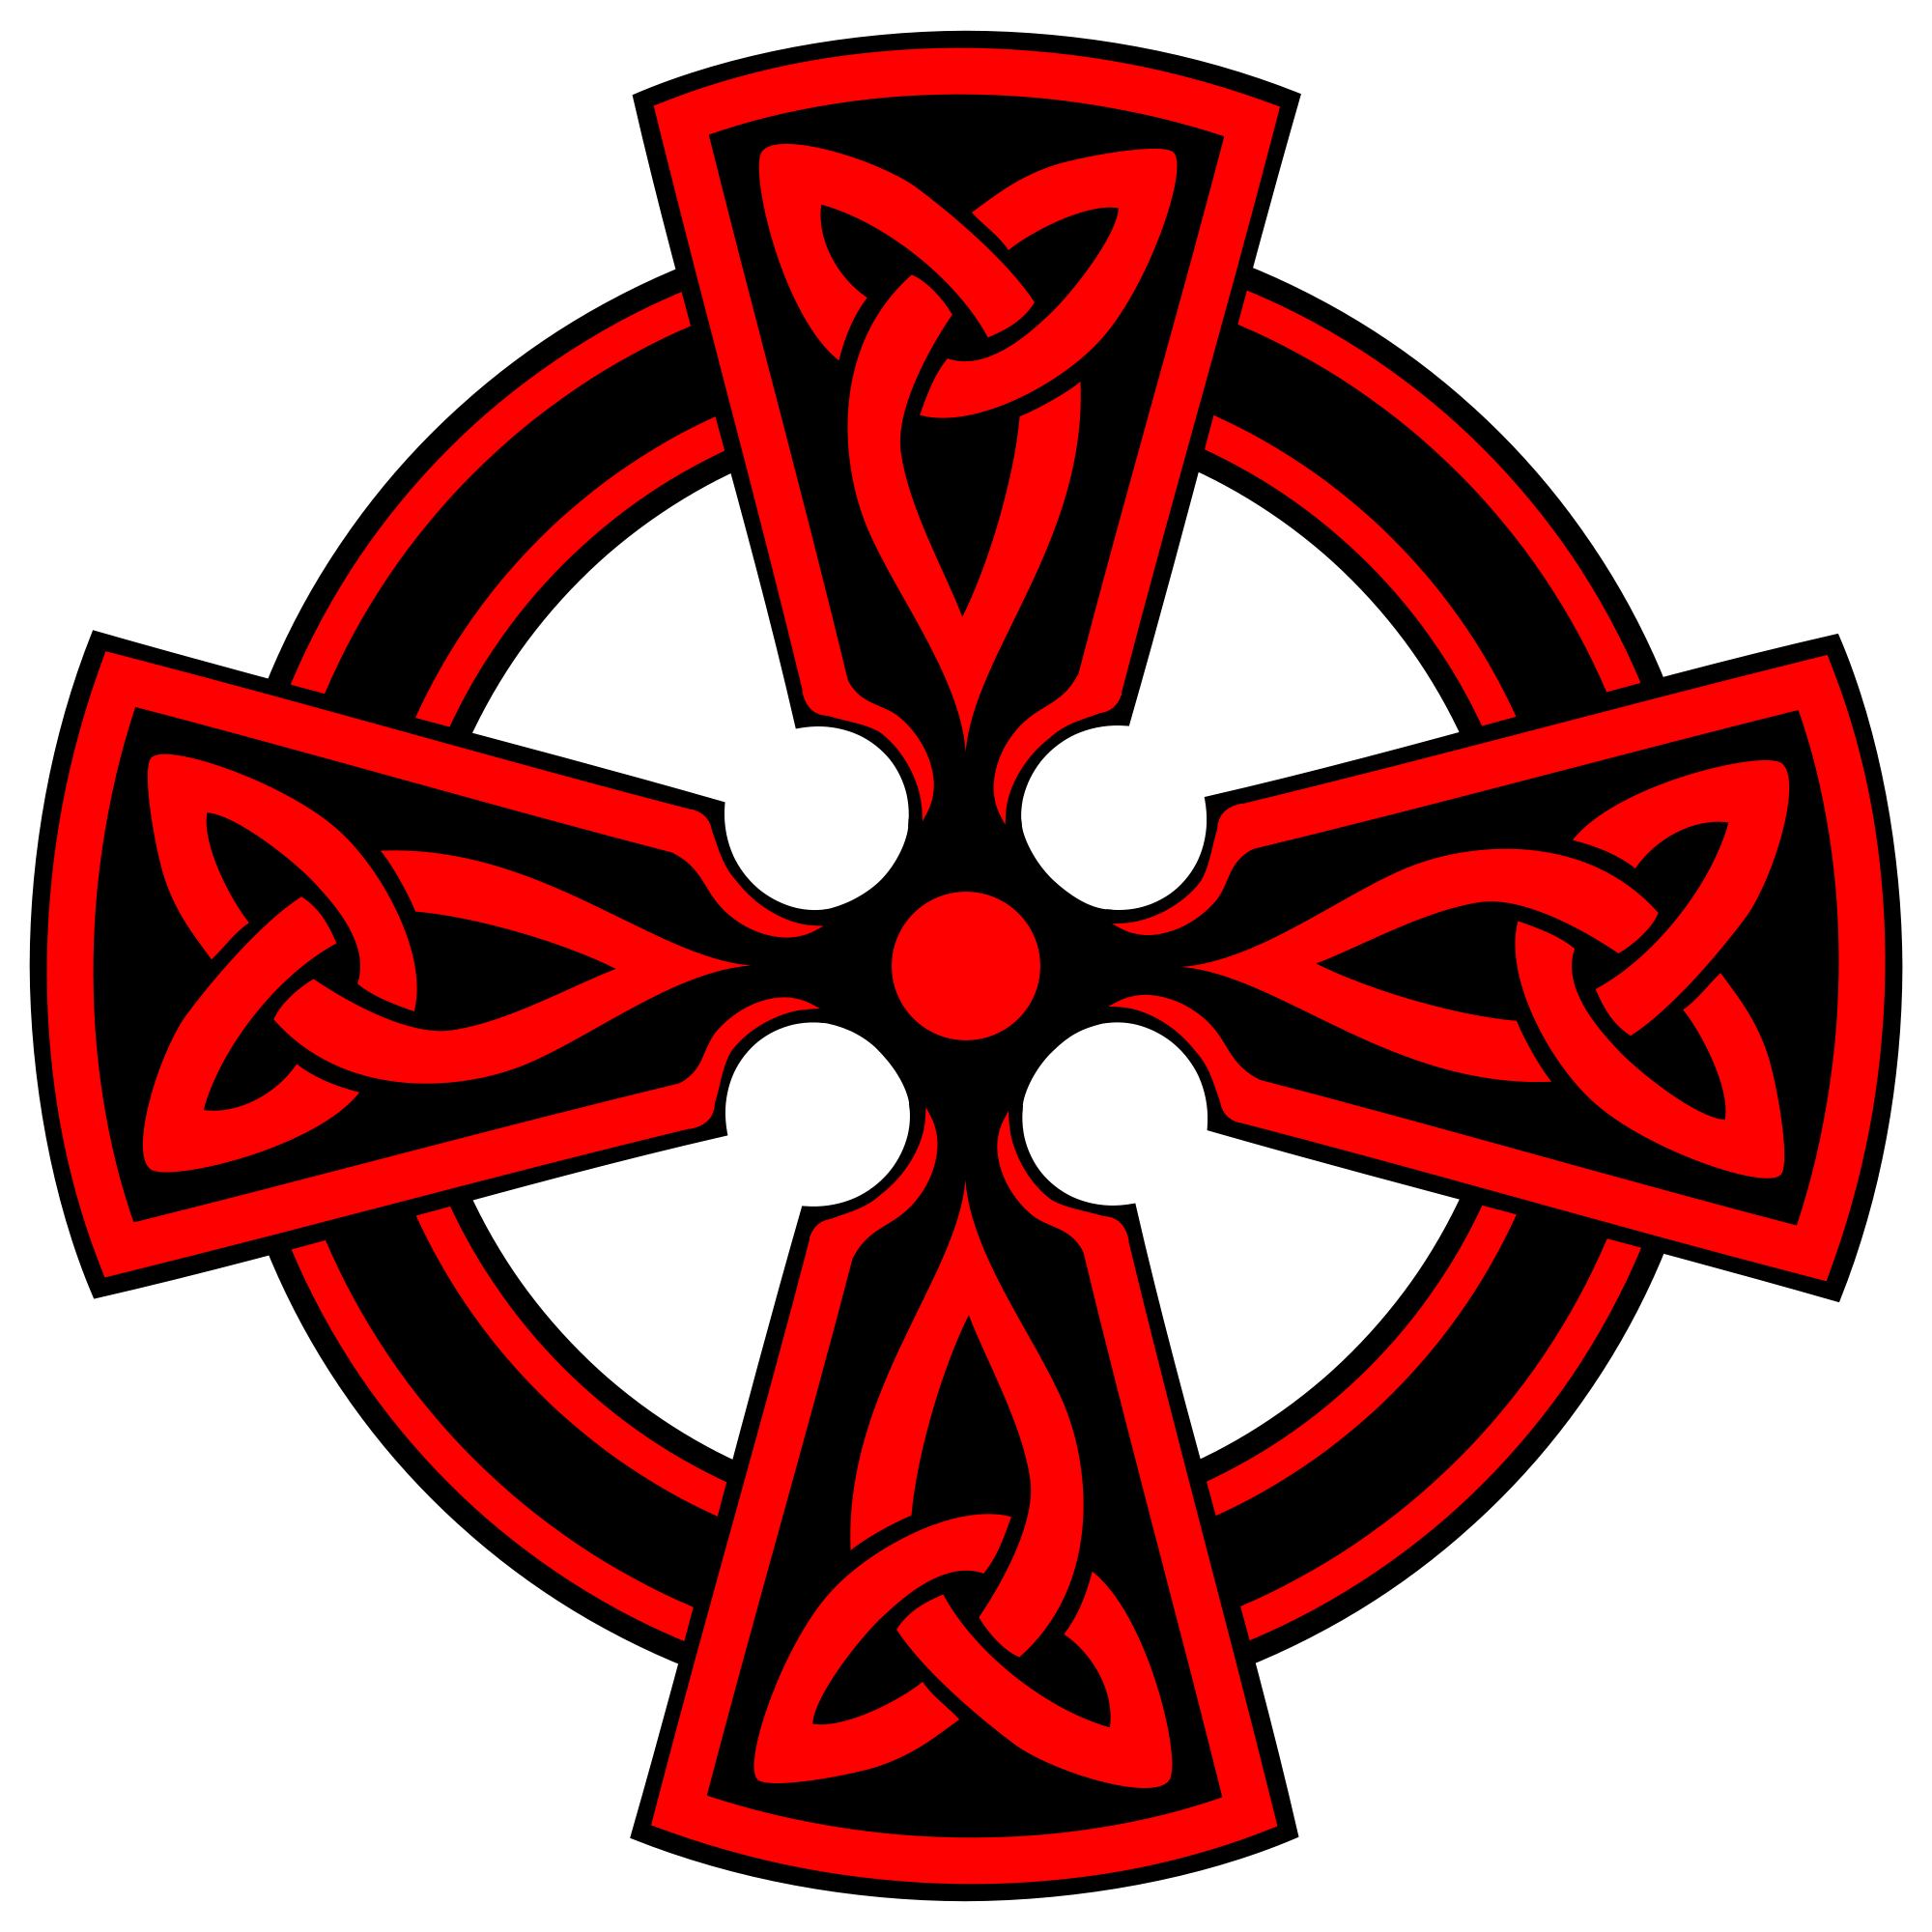 Red Cross clipart svg Red Open decorative Cross triquetras